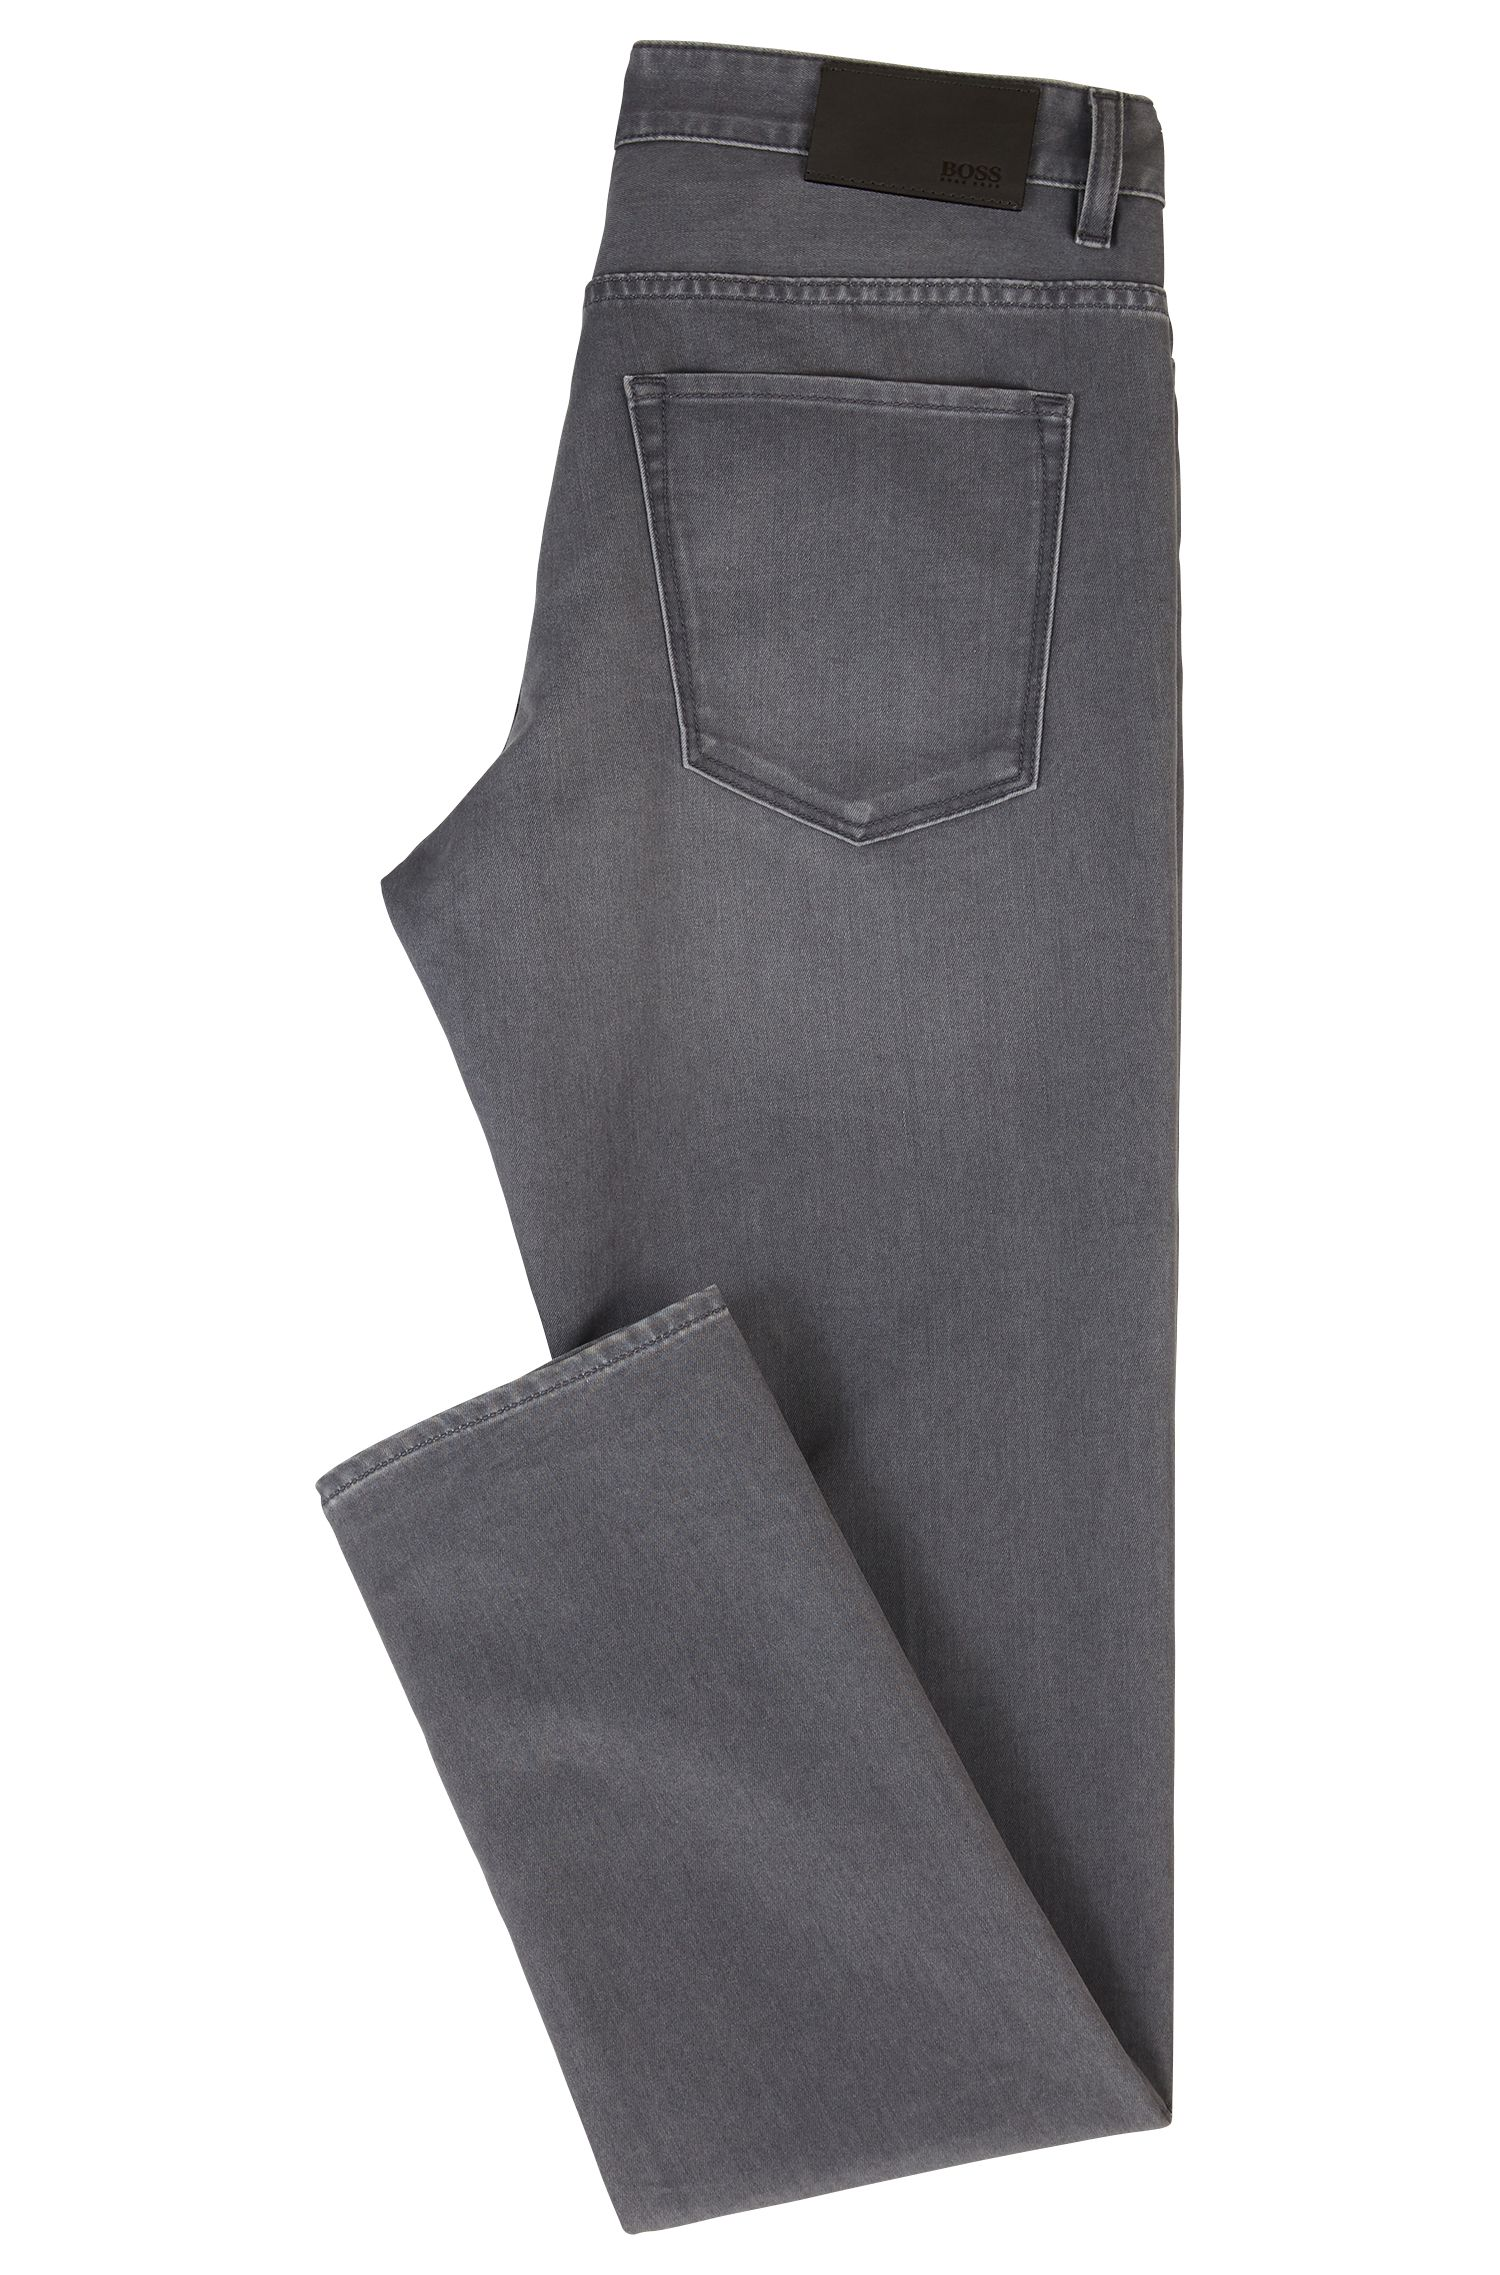 Slim-fit jeans van grijs, comfortabel stretchdenim